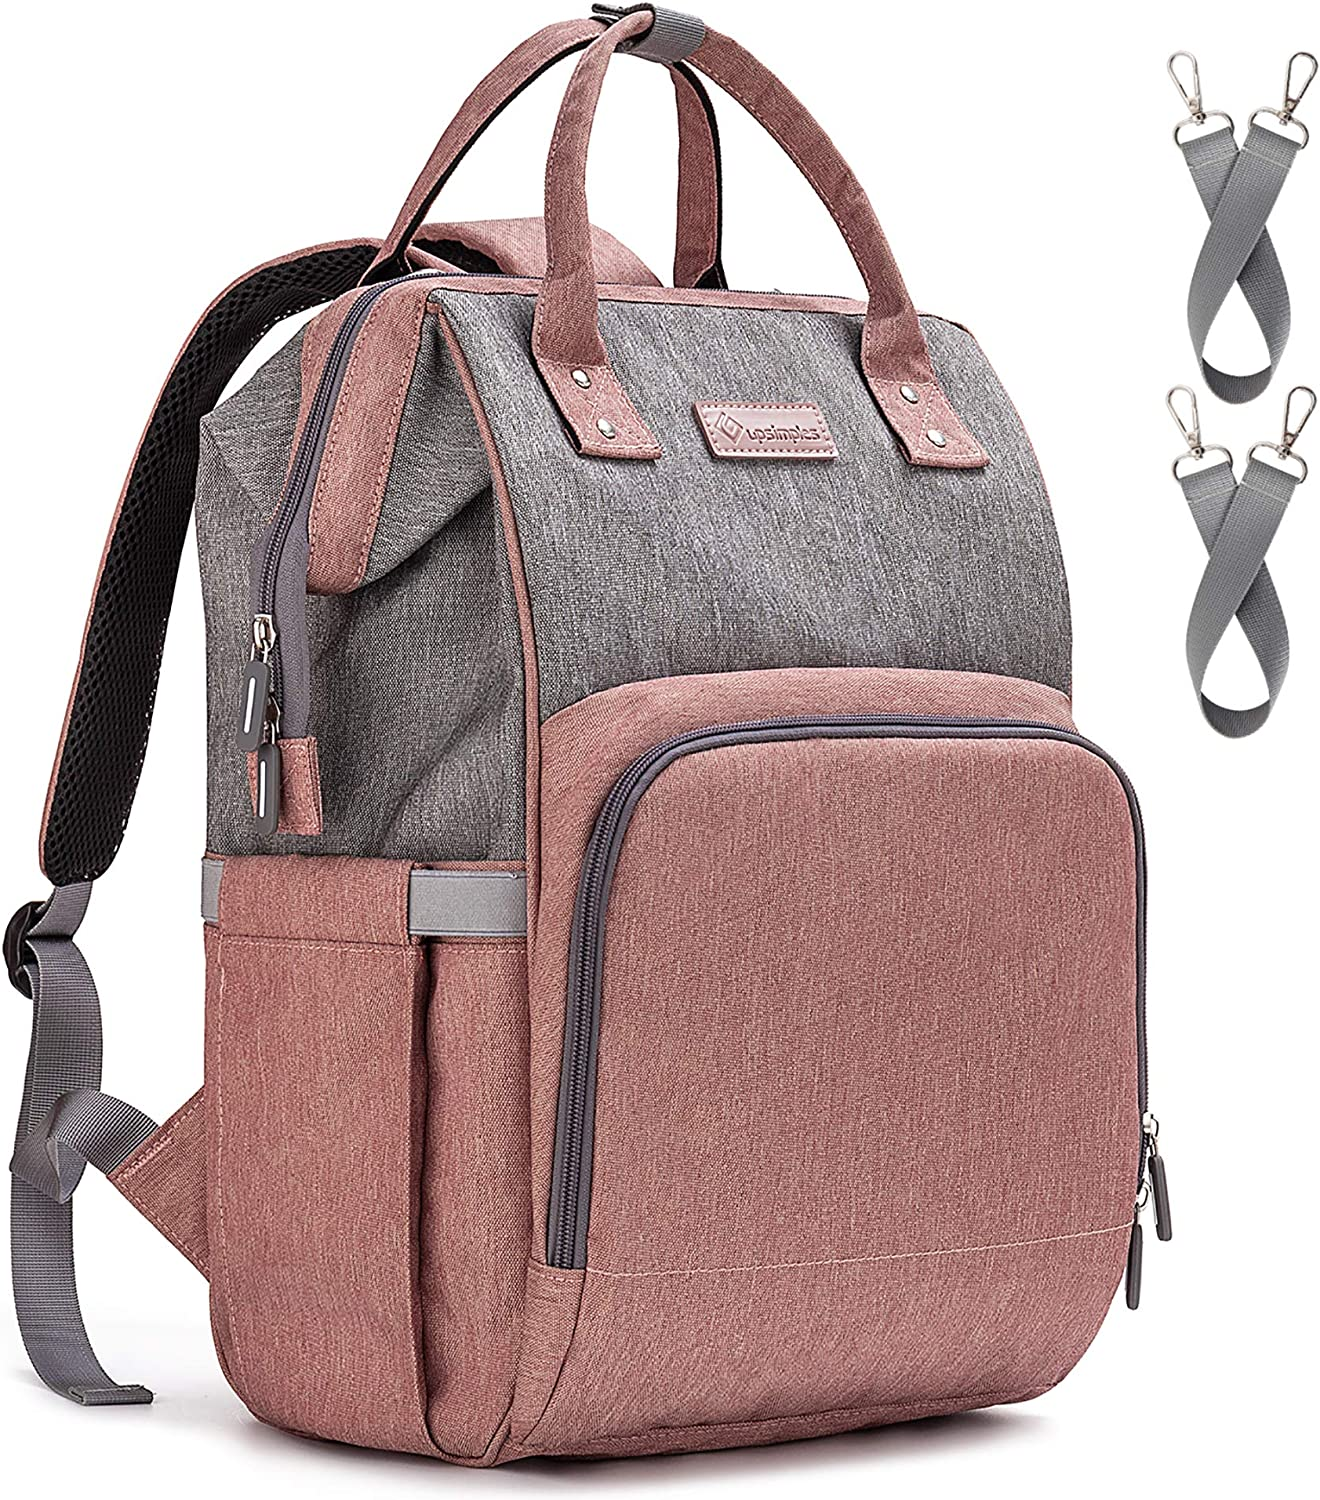 Upsimples Baby Changing Bag,Nappy Bags,Diaper Rucksack Backpack with USB Charging Port and 2 Stroller Straps for Mom and Dad (Pink&Gray)